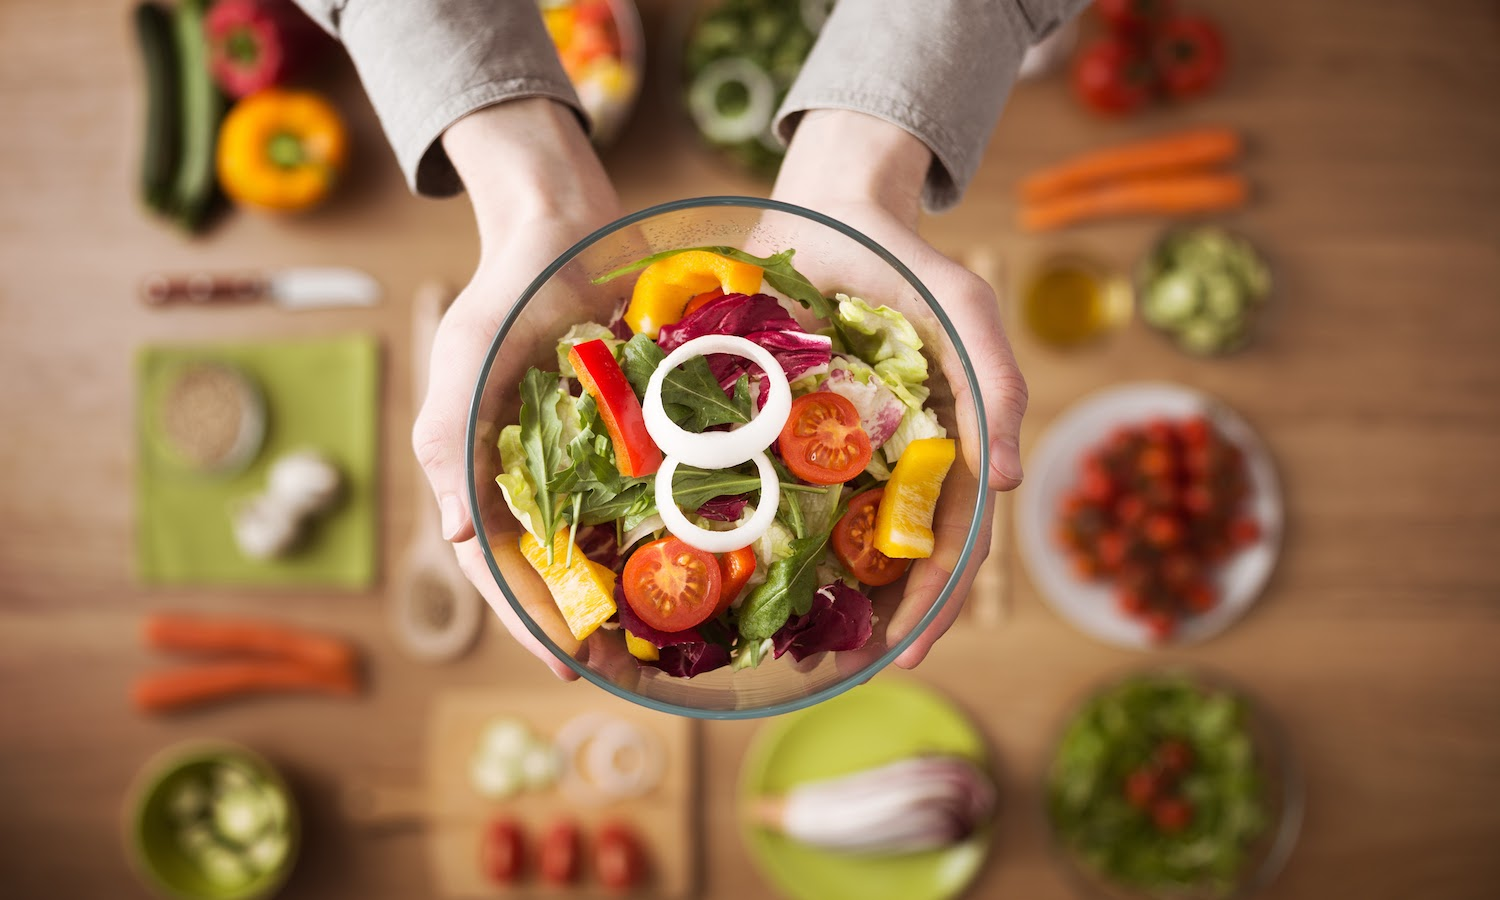 New report predicts the future of food consumption and packaging